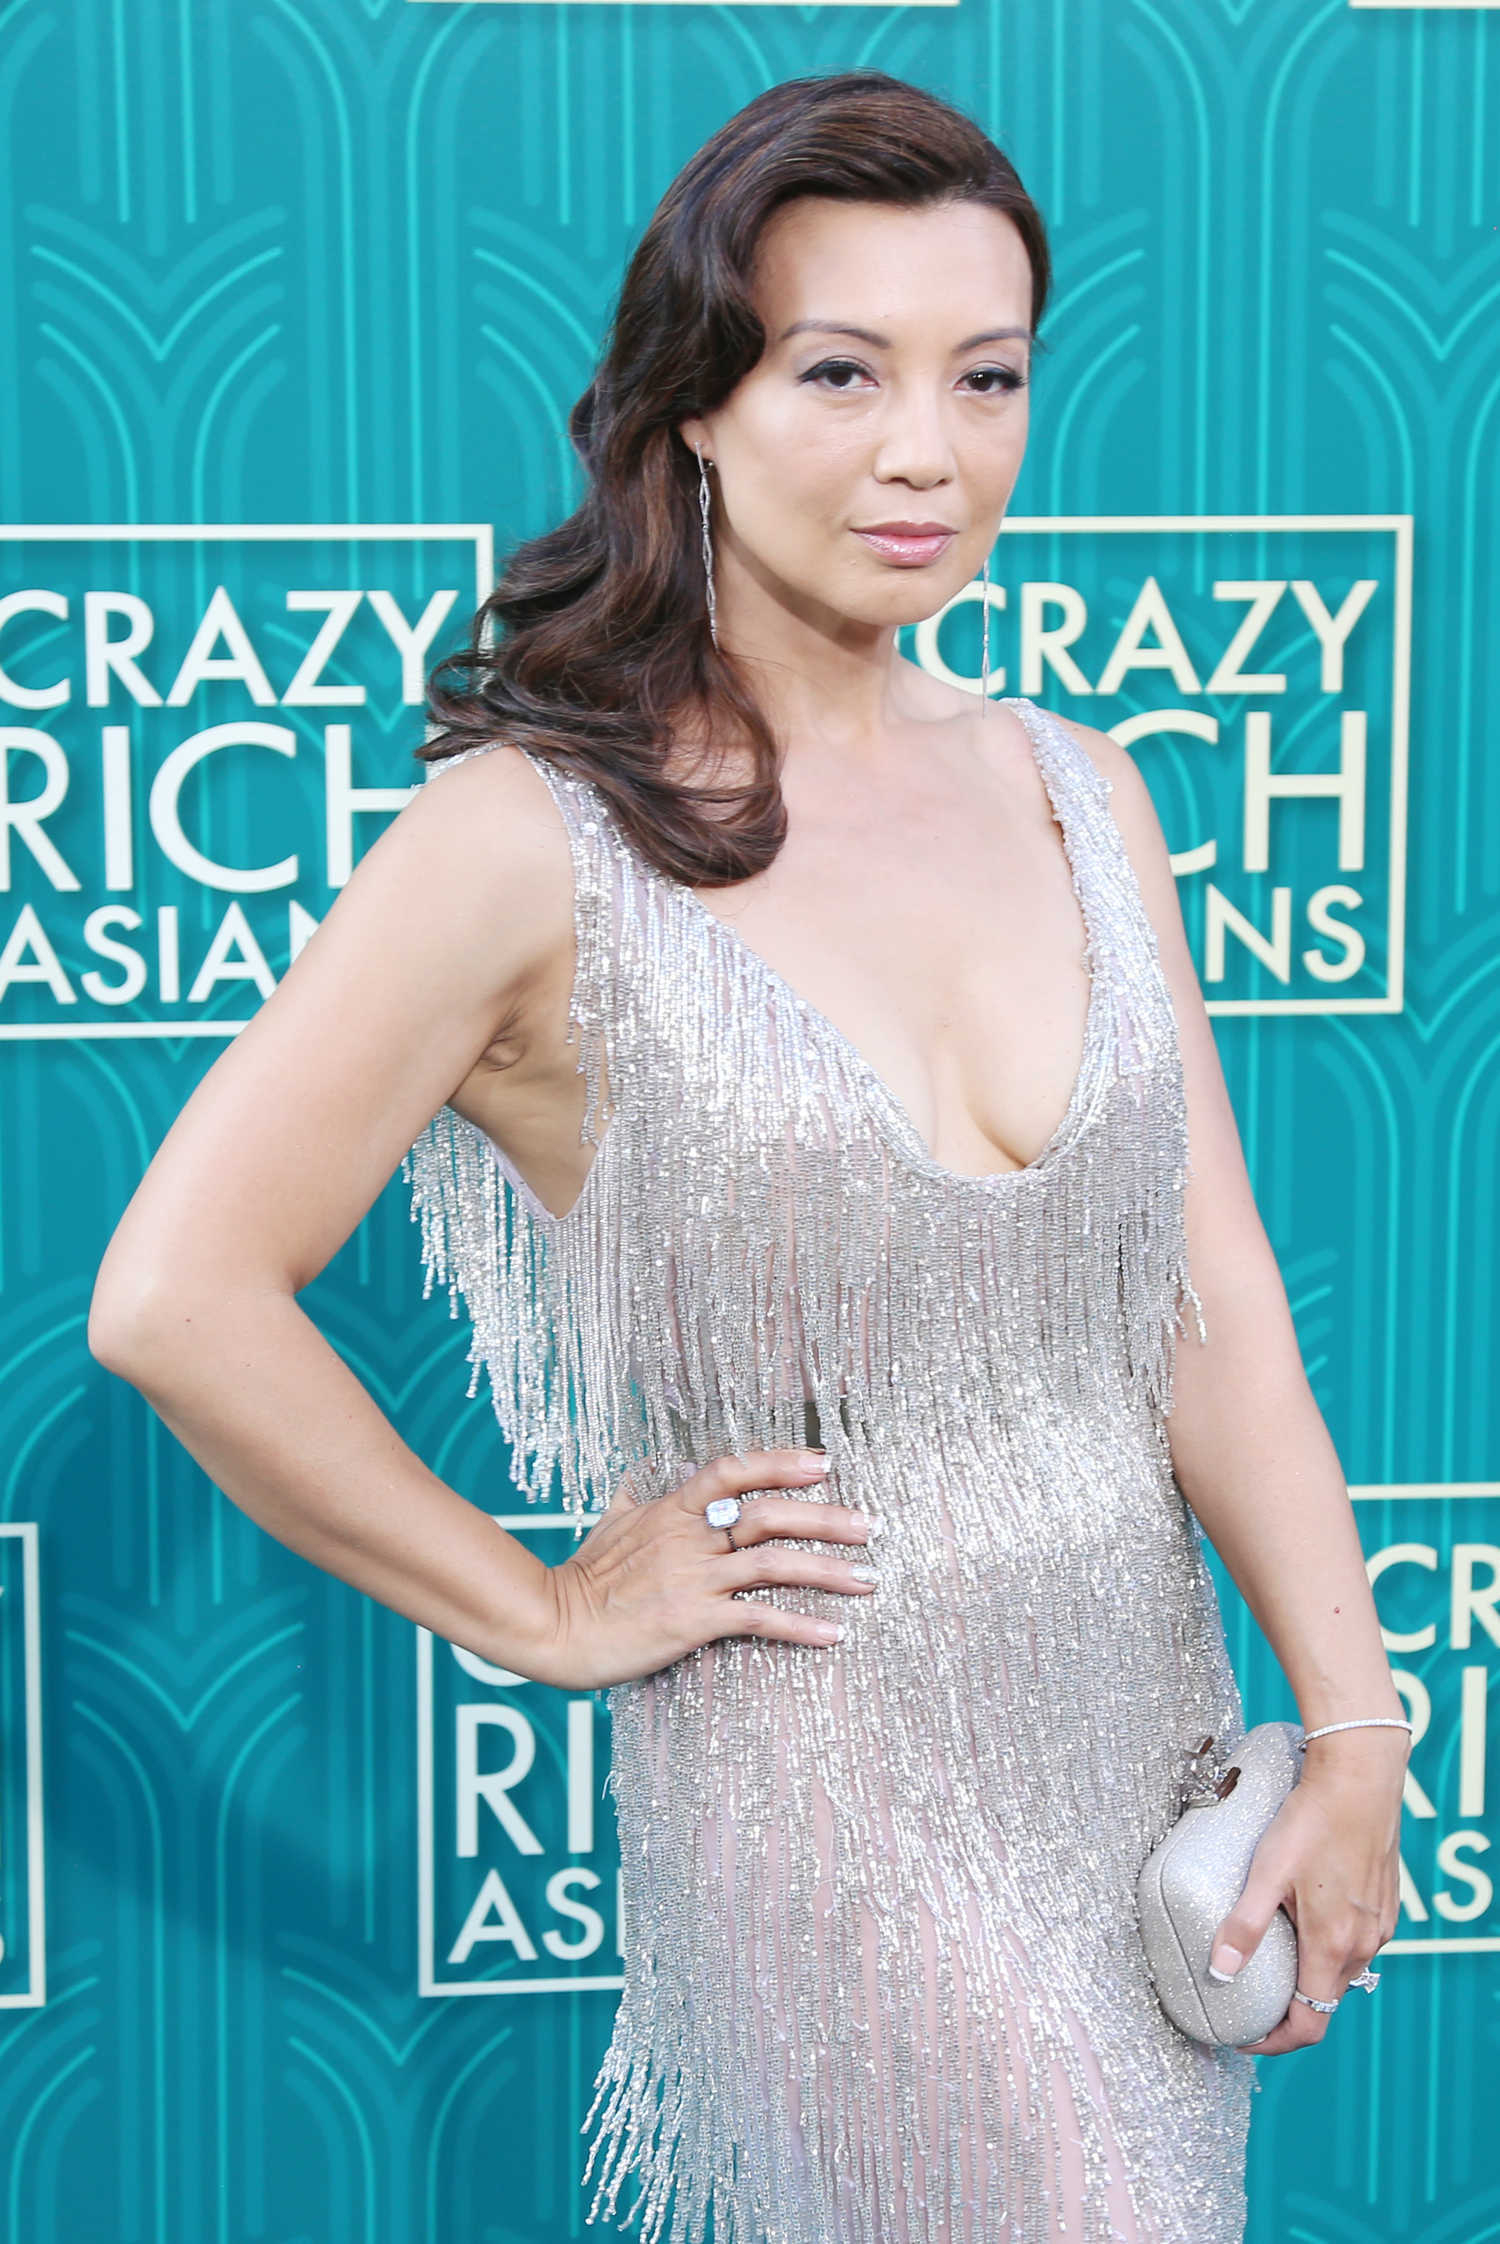 Ming-Na Wen at the Crazy Rich Asians Premiere in Los Angeles - Celeb Donut